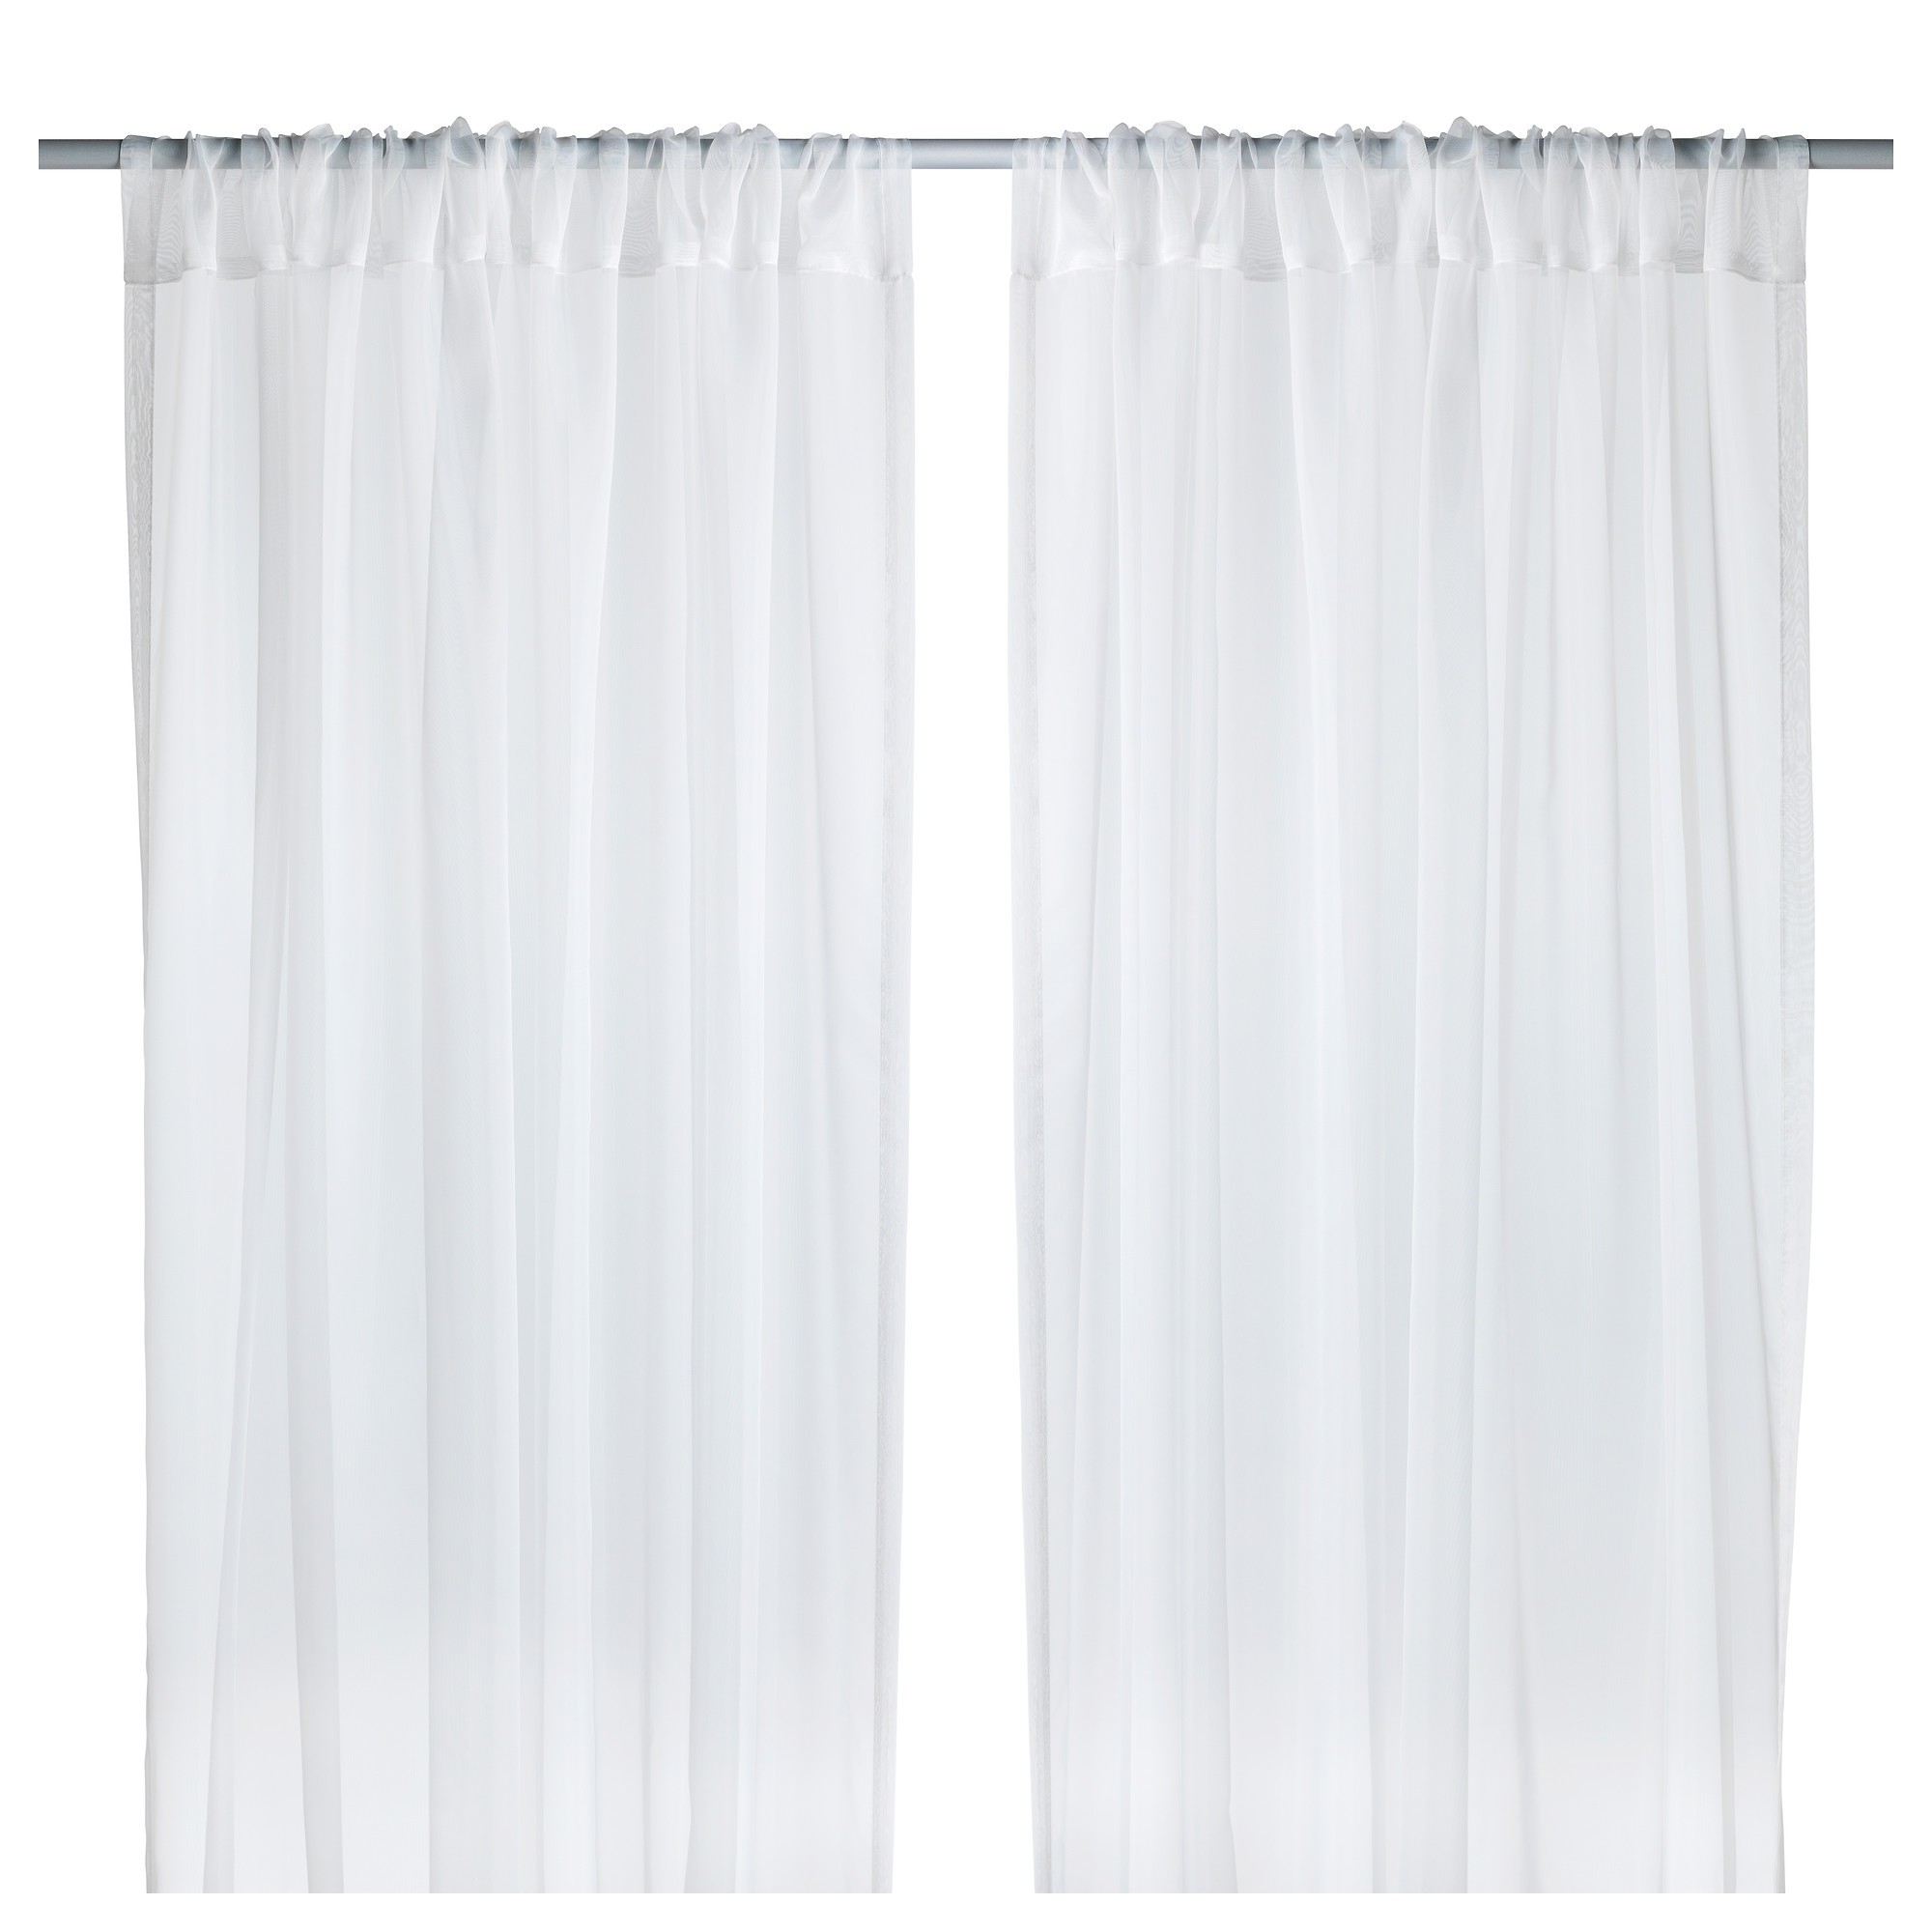 Teresia Sheer Curtains 1 Pair Ikea Within Curtain Sheers (View 7 of 25)